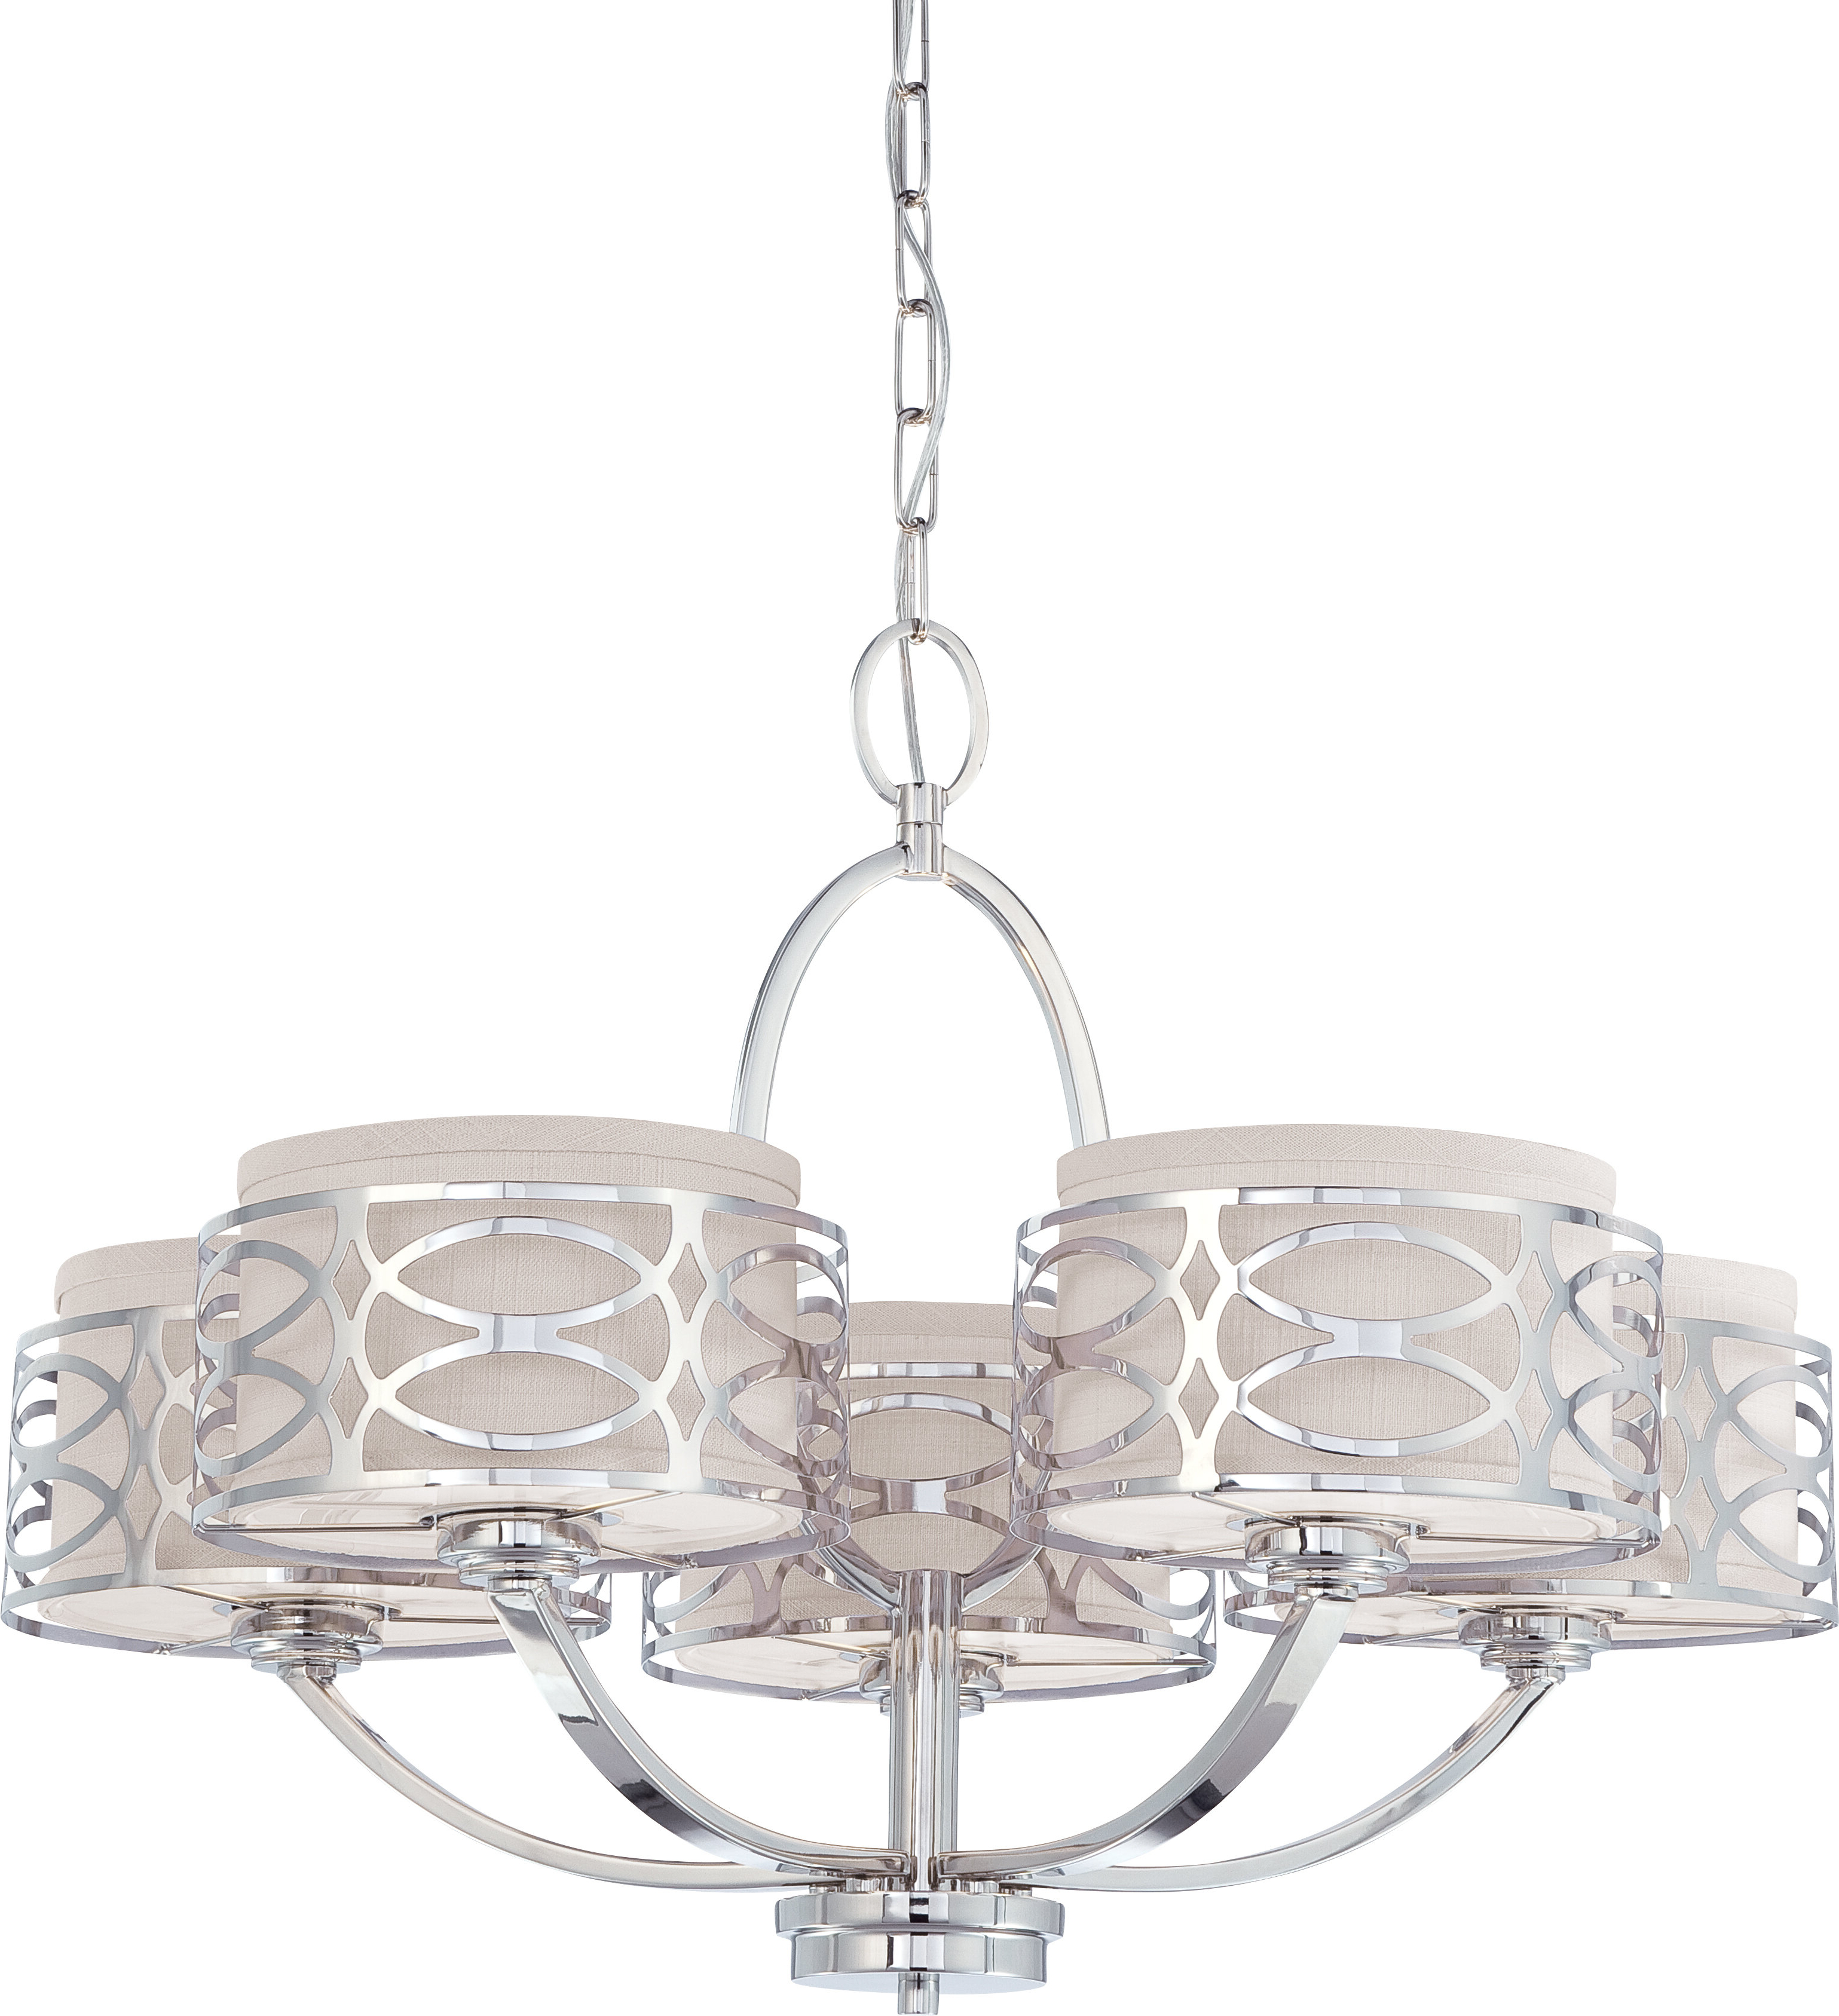 Bela 5-Light Drum Chandelier intended for Well-known Hermione 5-Light Drum Chandeliers